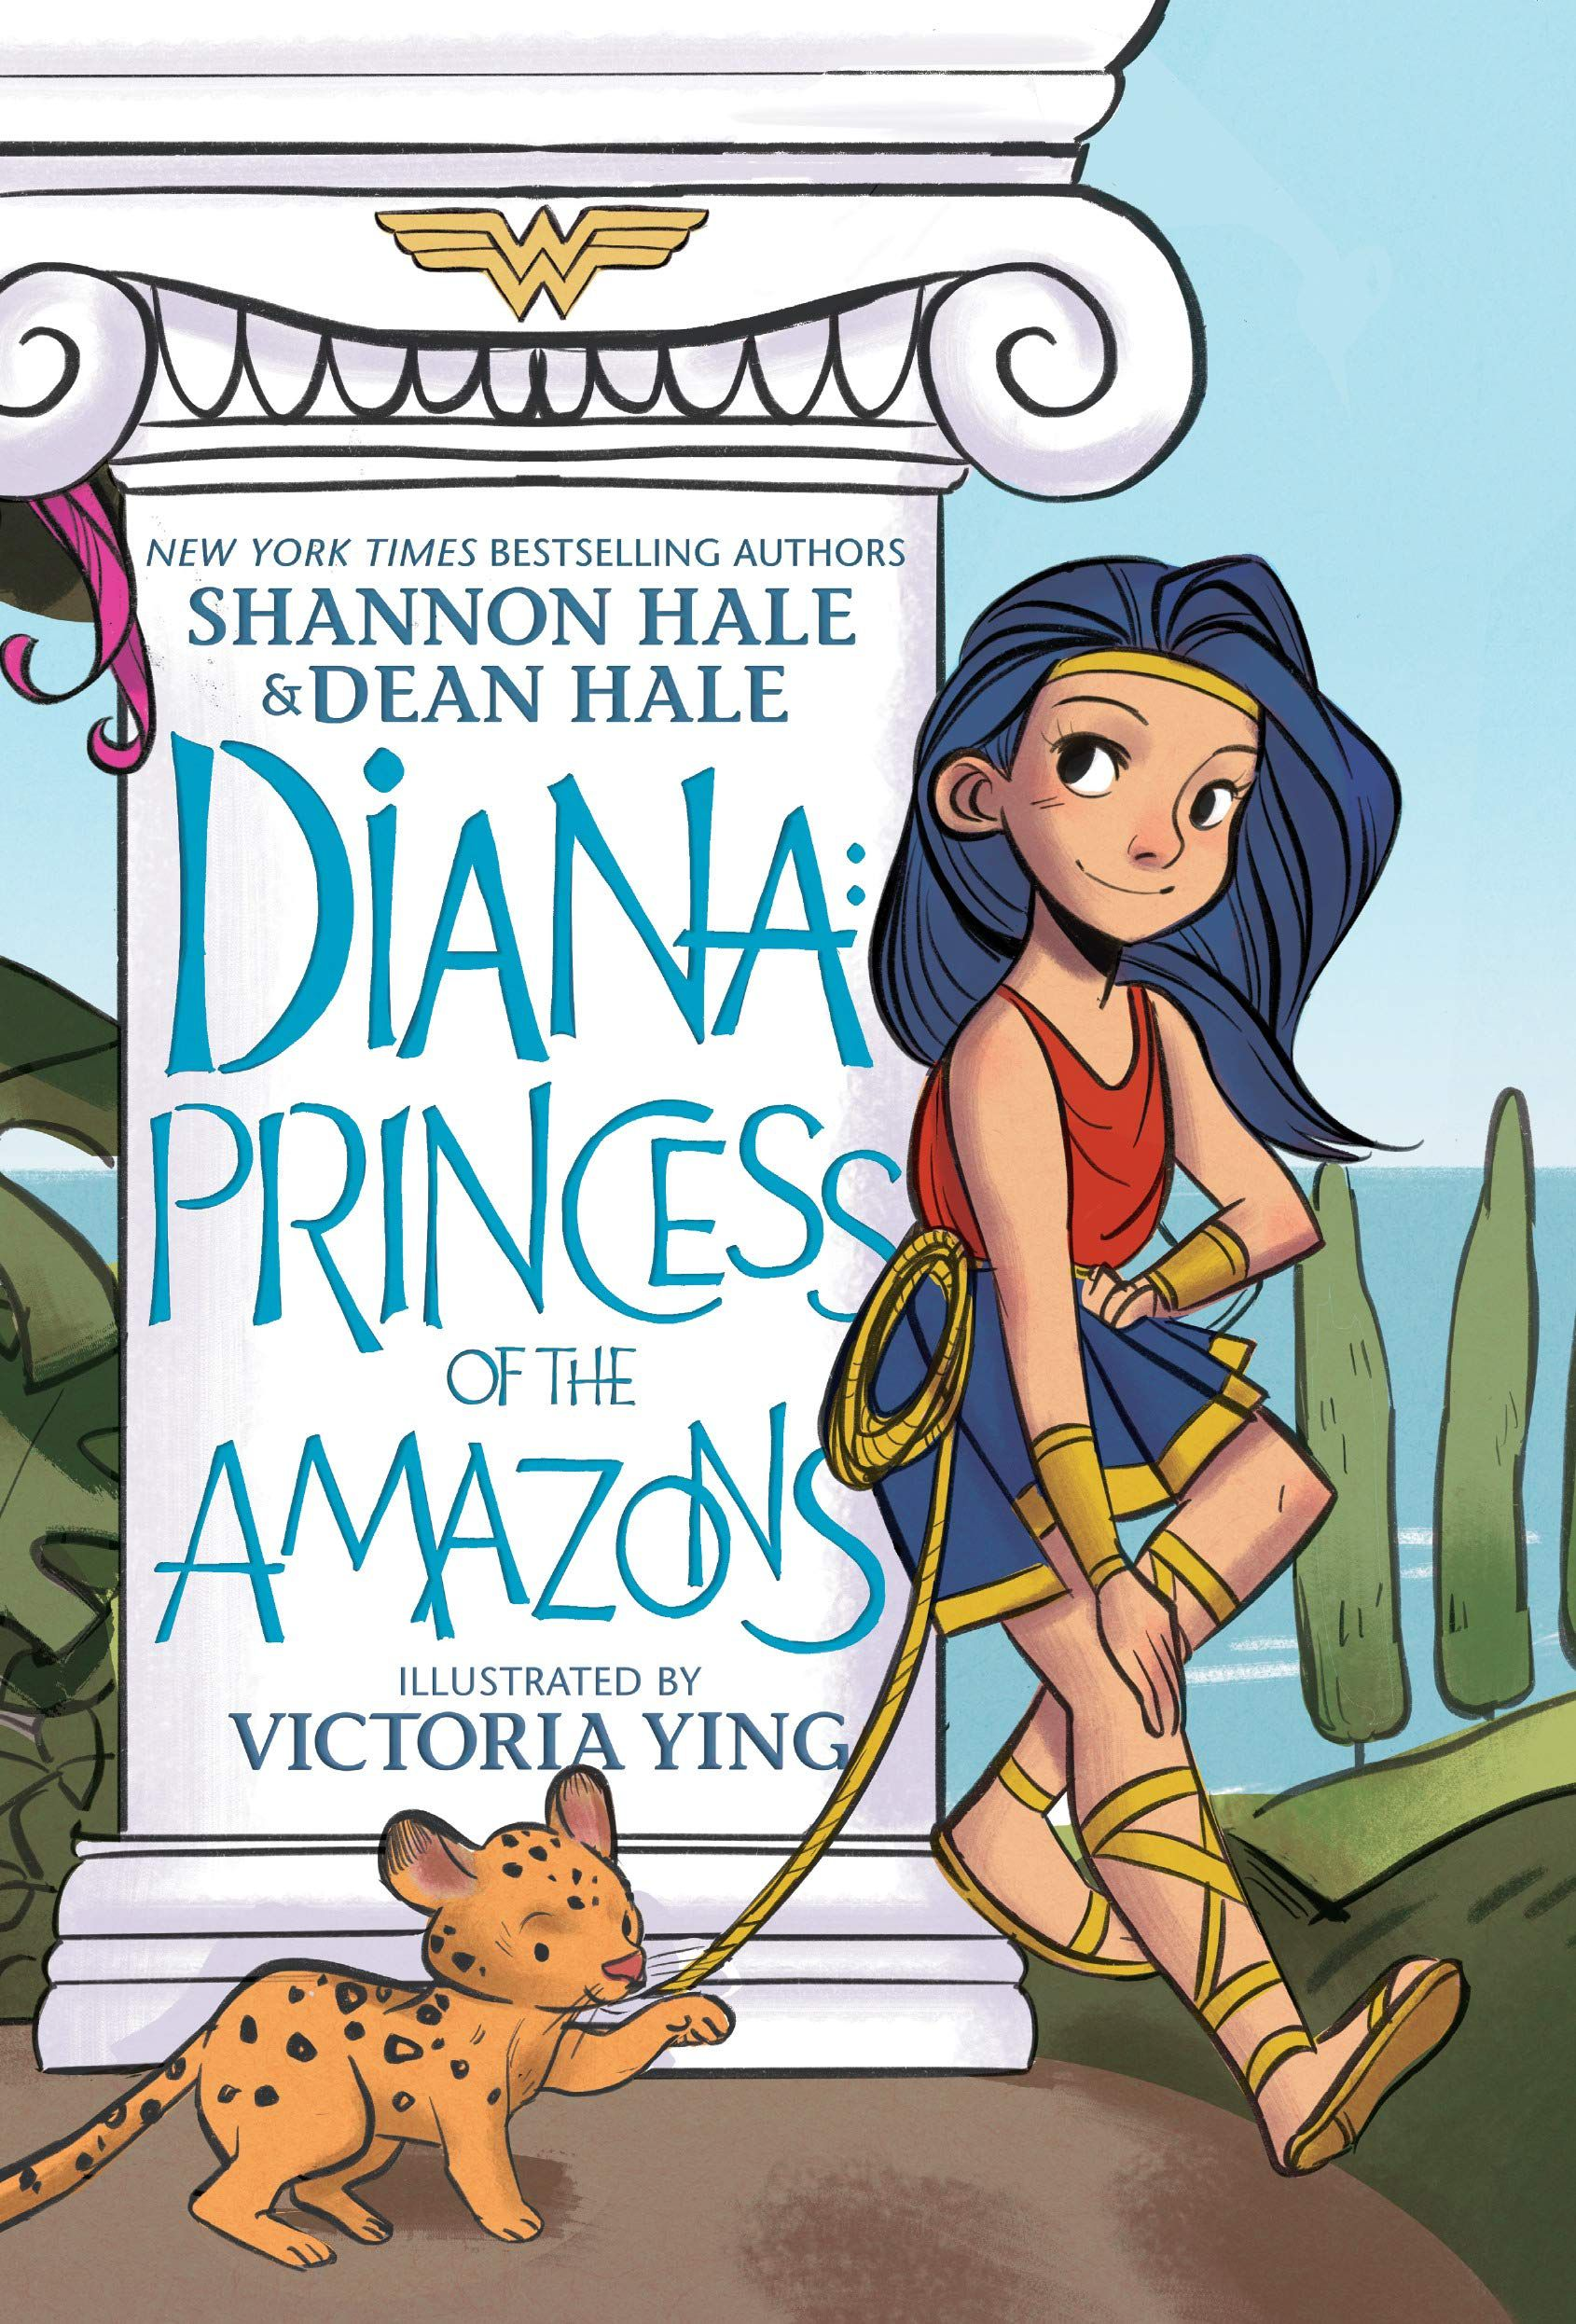 diana princess of amazons shannon hale cover.jpg.optimal